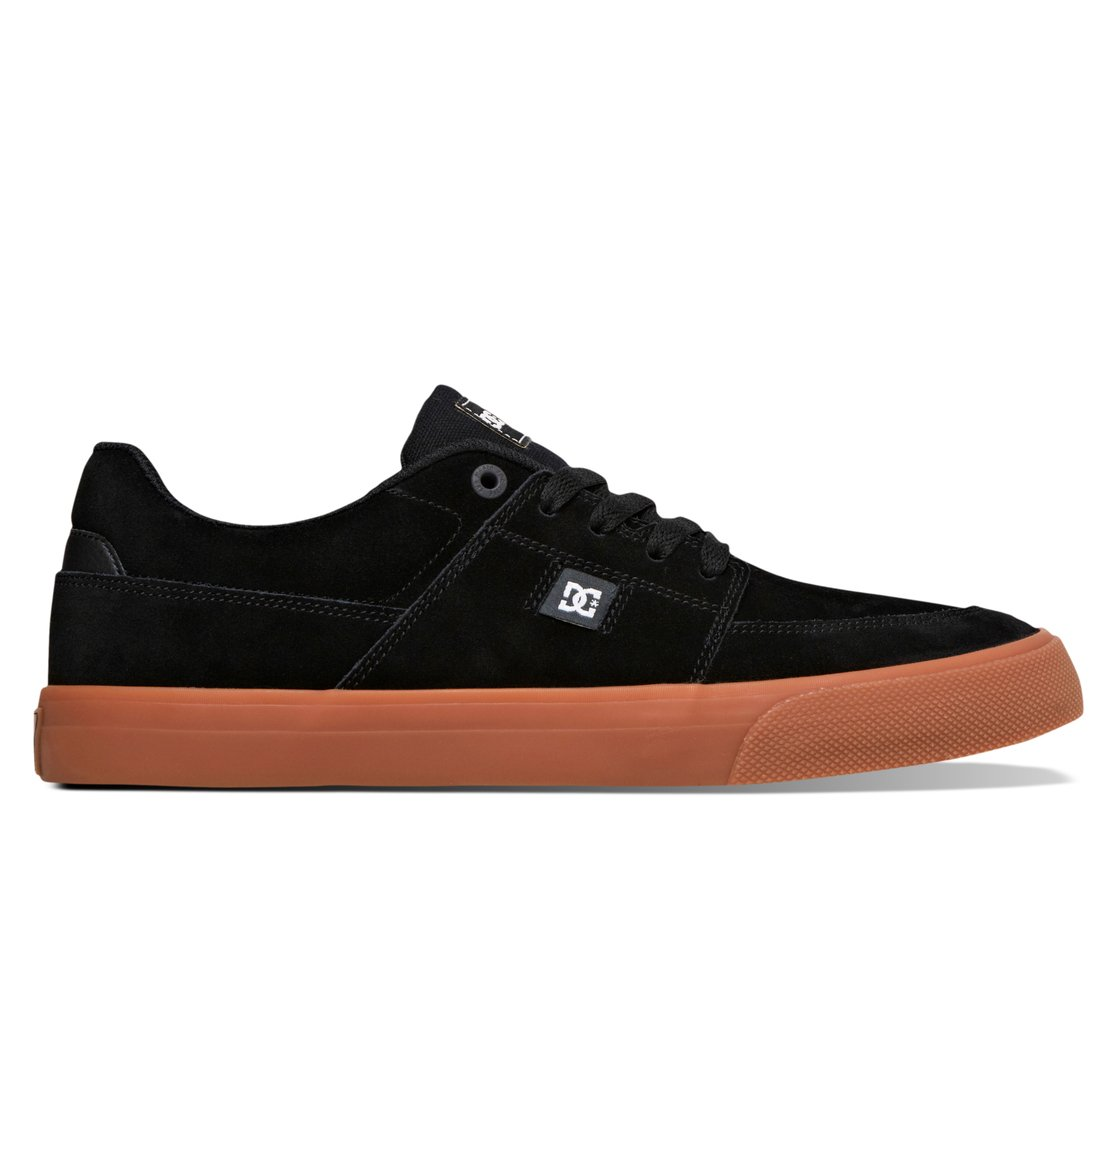 DC Shoes Wes Kremer 2 S - Low Top Skate Shoes - Homme